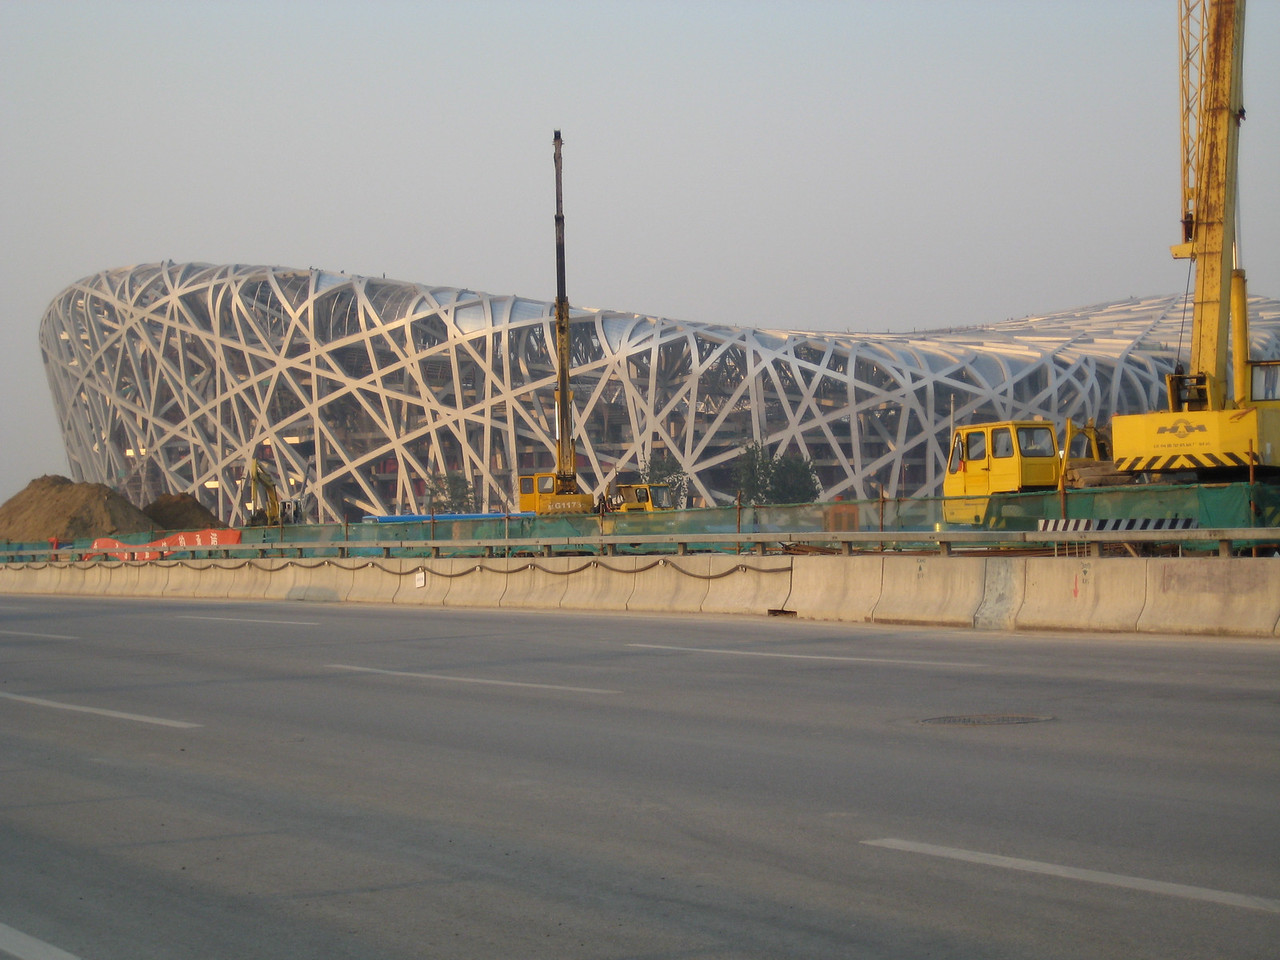 One of the 2008 Olympics buildings as it was being built.